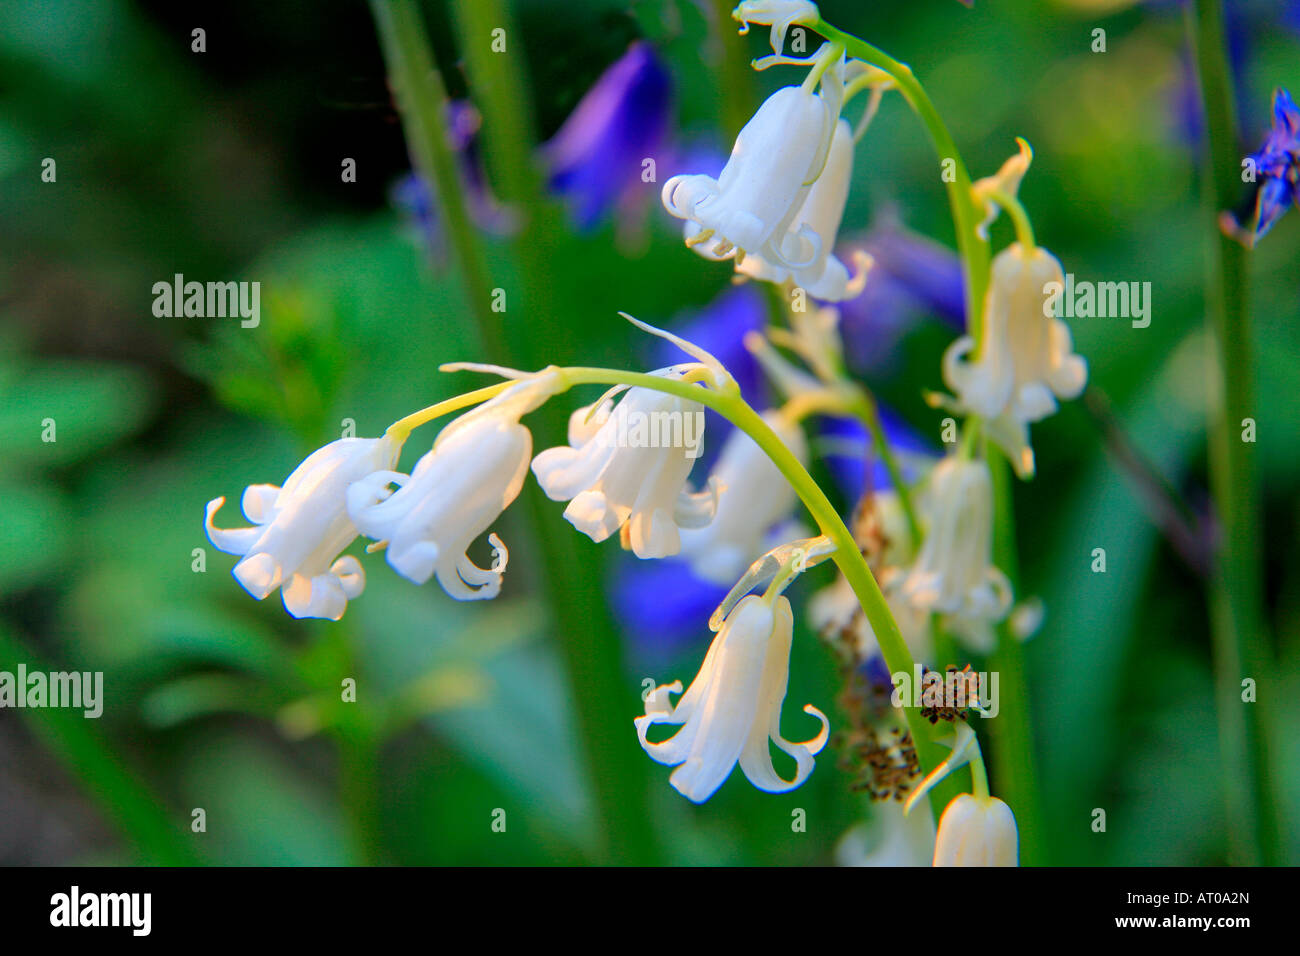 White Bluebell Flowers Hyacinthoides Non Scripta Spring Bluebells In